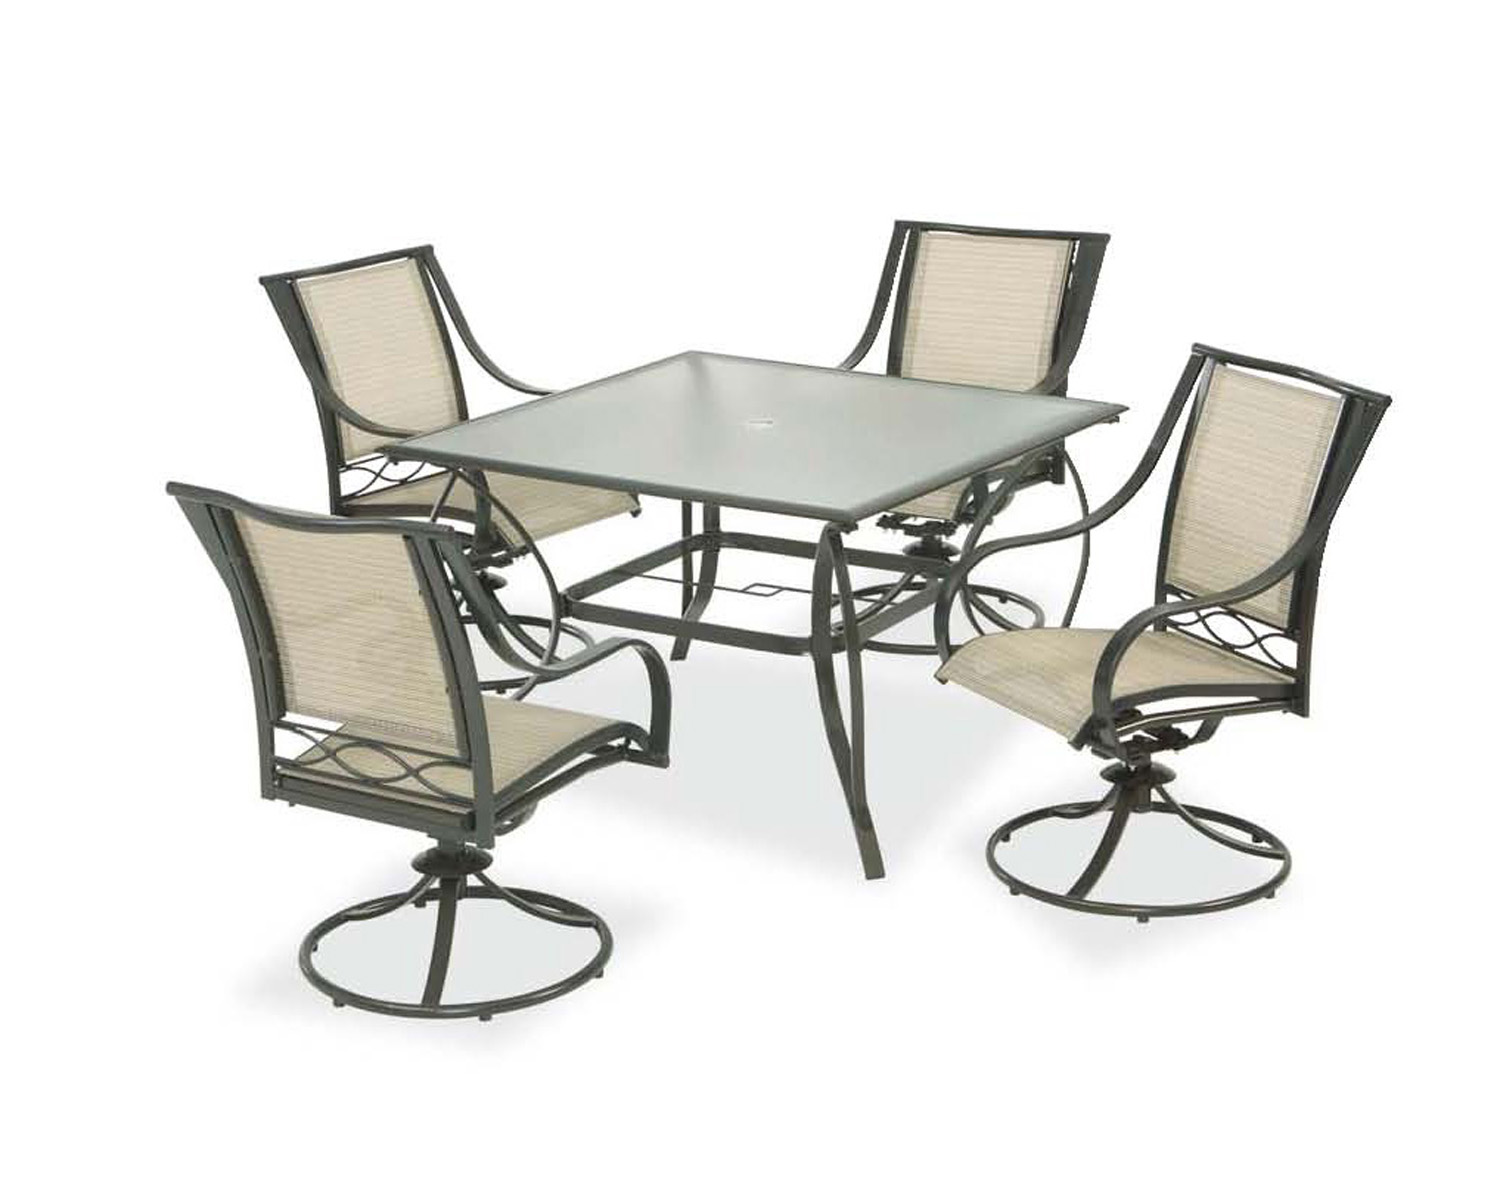 hampton bay patio chairs director chair covers casual living worldwide recalls swivel due to fall dana point and wellington sets